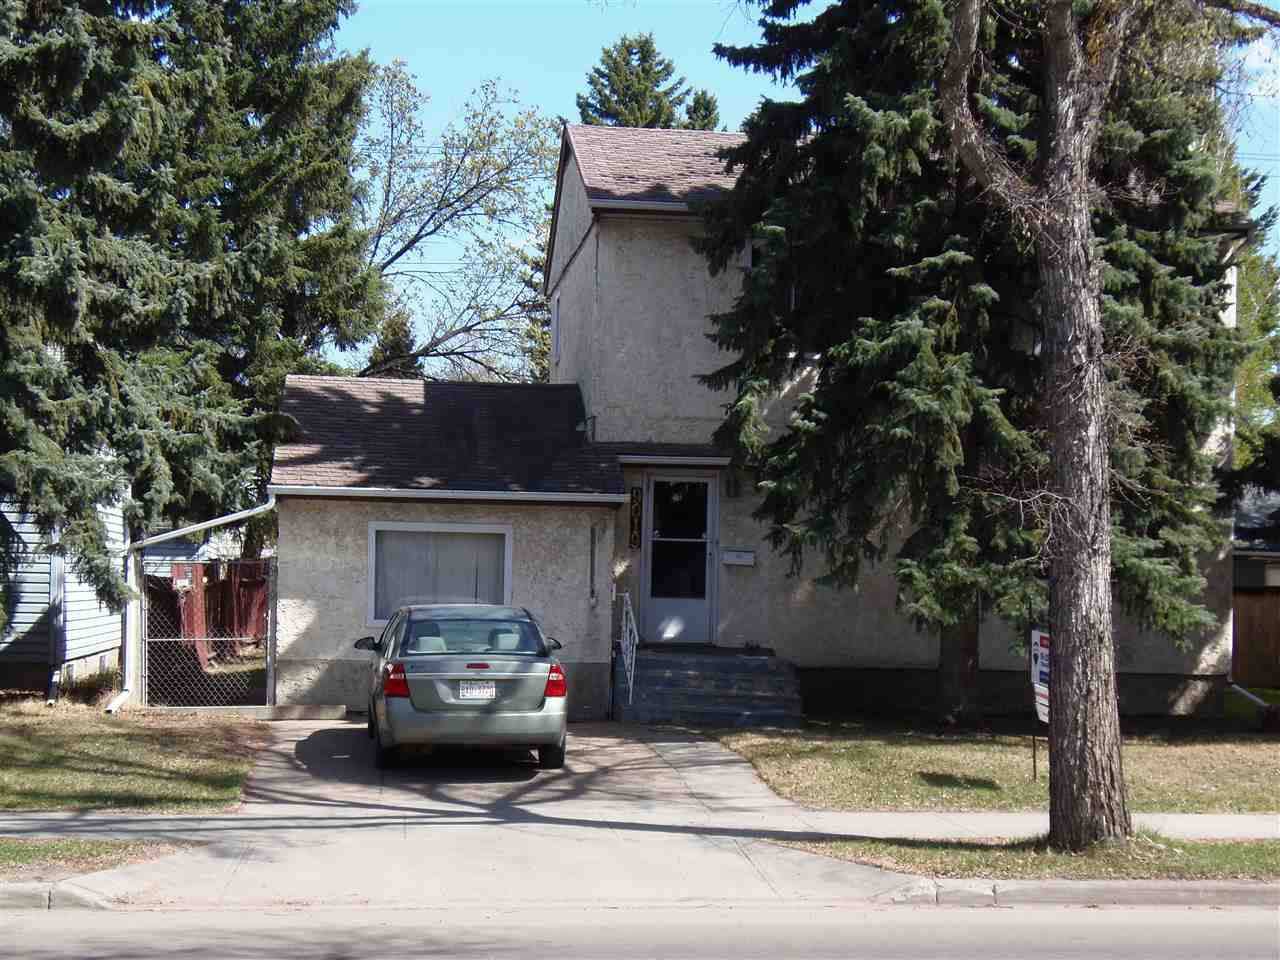 Main Photo: 9019 79 Street in Edmonton: Zone 18 House for sale : MLS®# E4104986